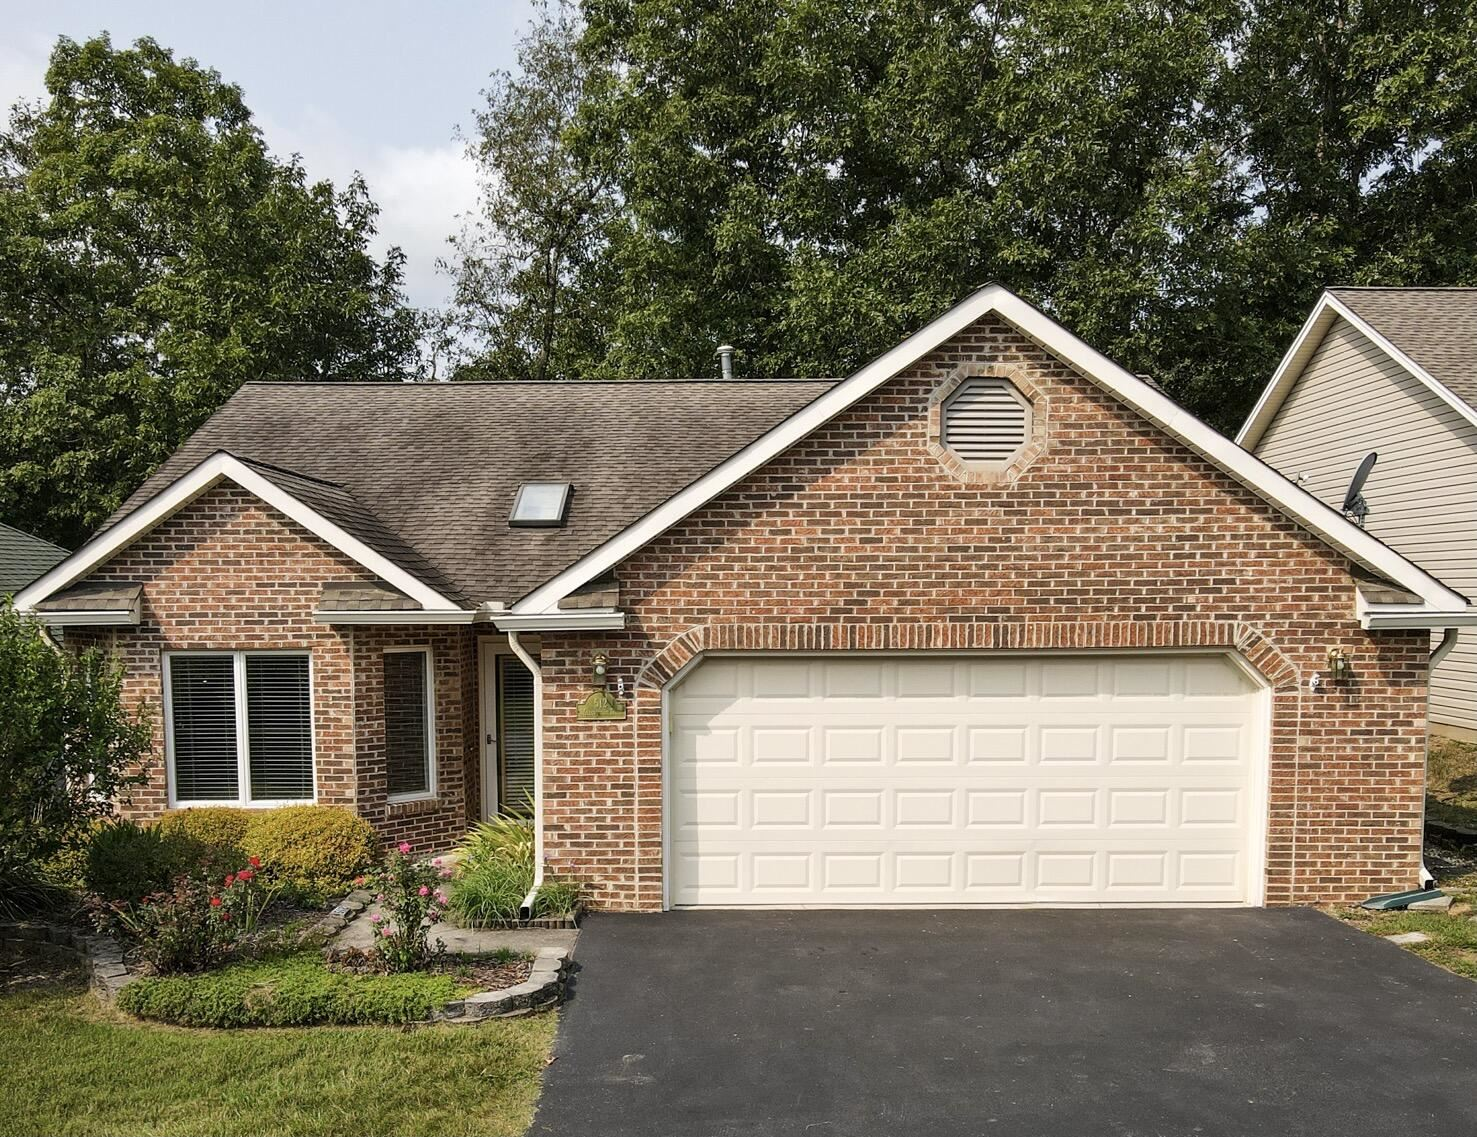 Photo of 512 Willowbrook Trace #512, Kingsport, TN 37660 (MLS # 9928739)